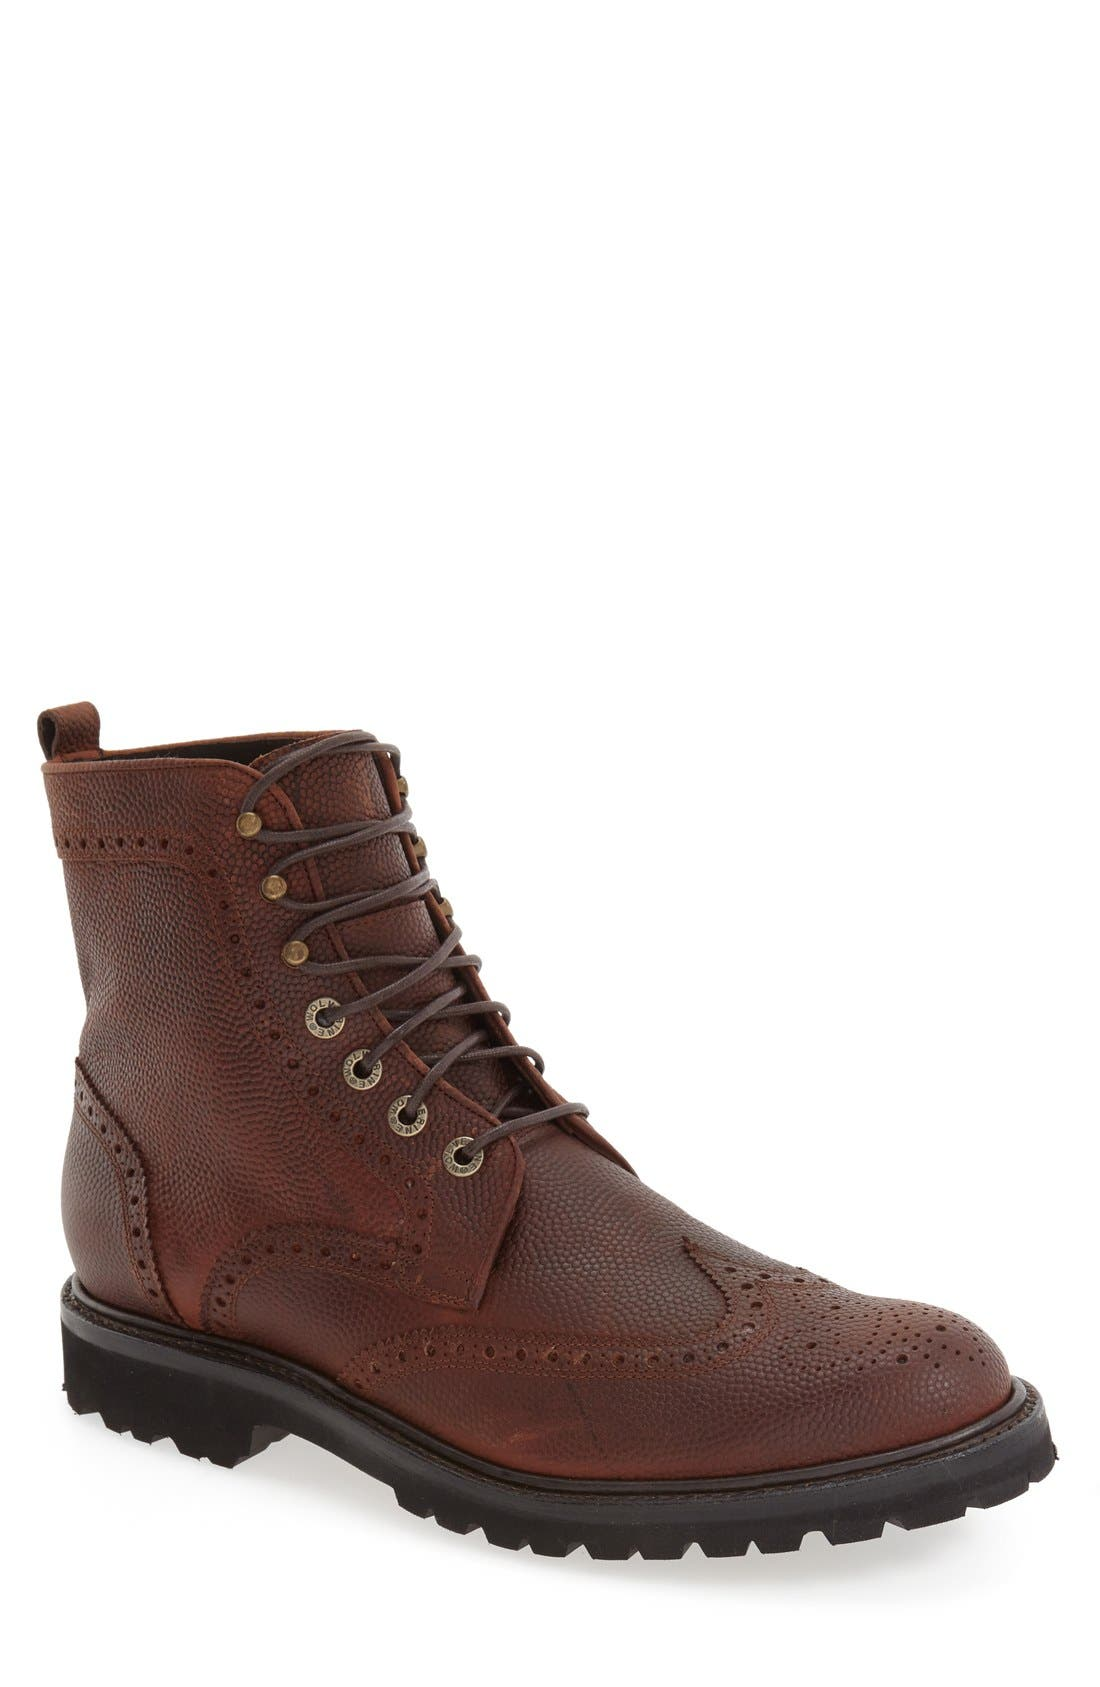 WOLVERINE,                             'Percy' Wingtip Boot,                             Main thumbnail 1, color,                             200